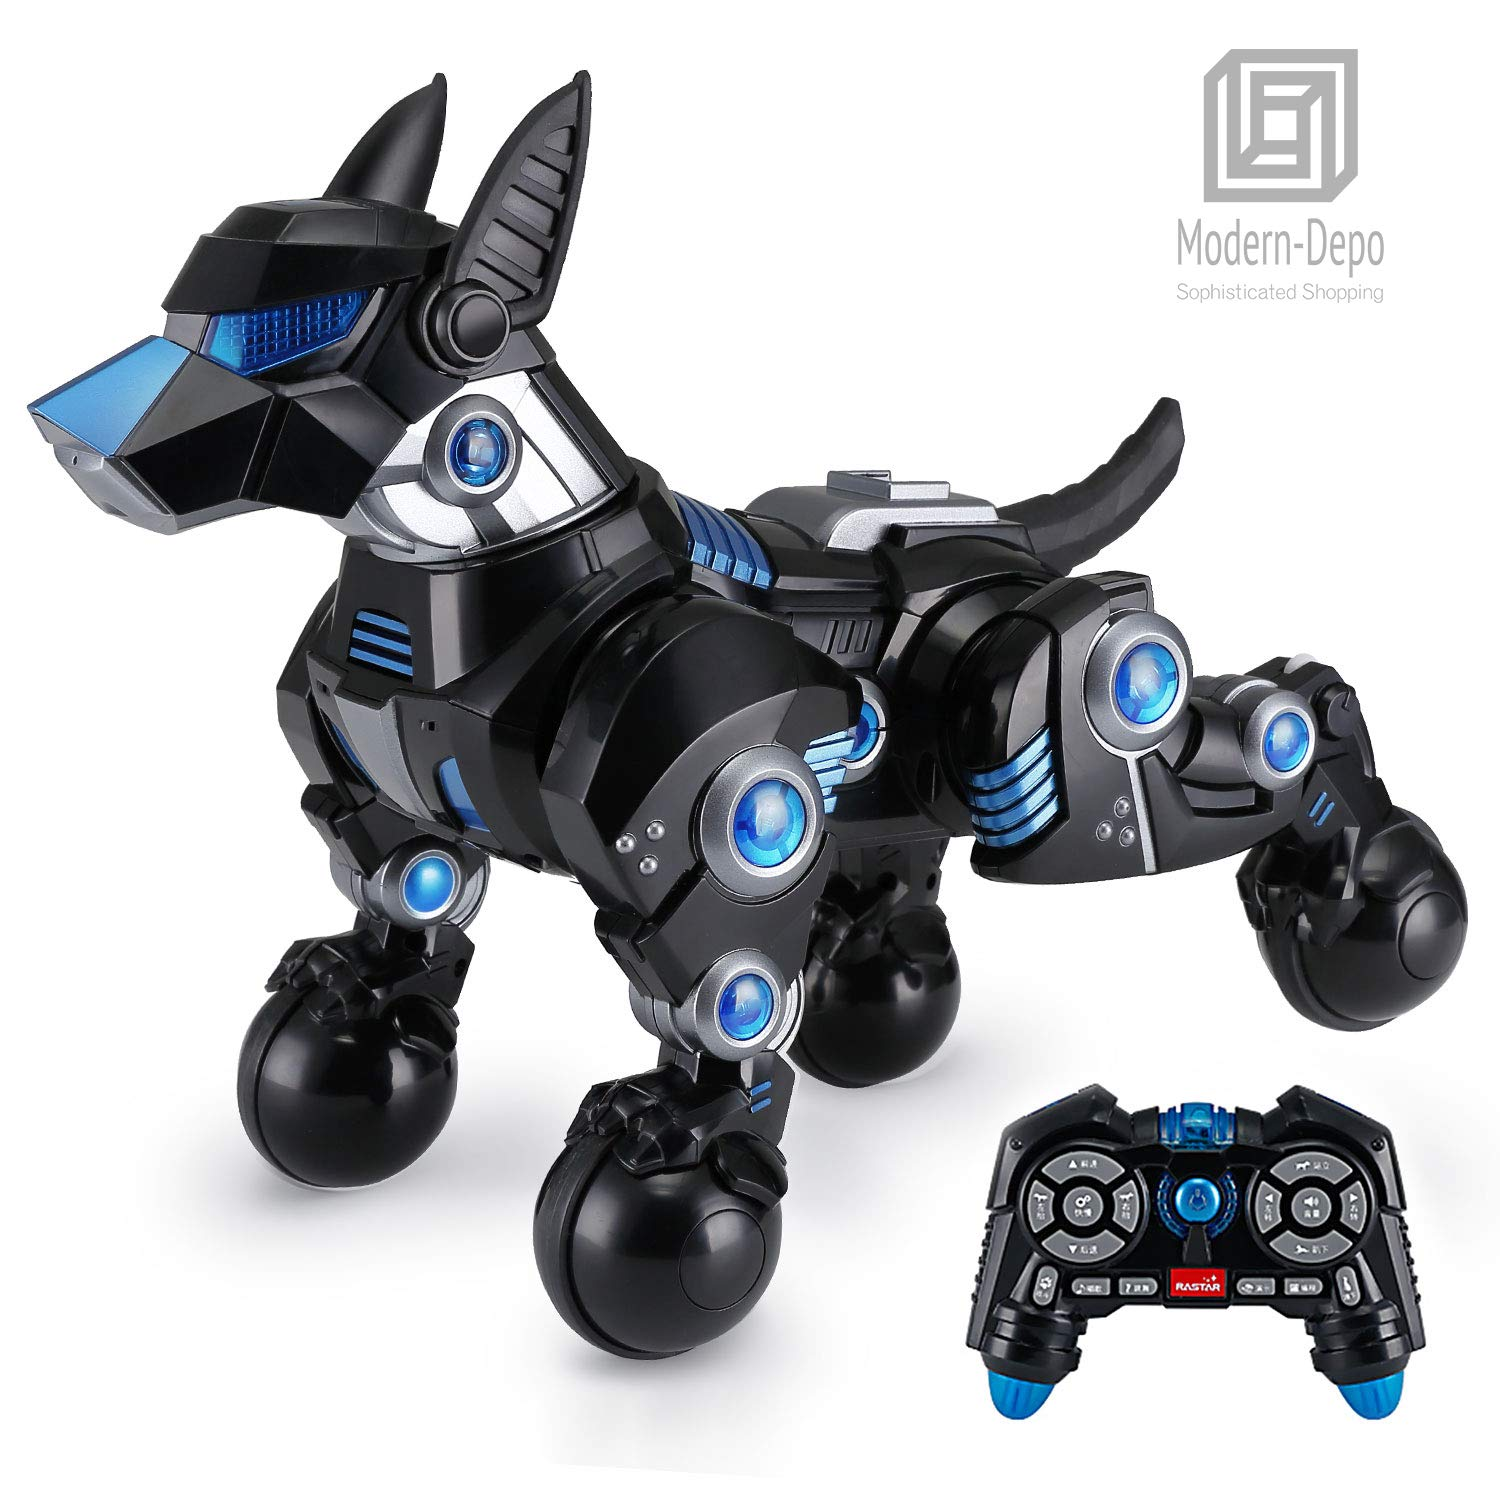 Modern-Depo Rastar Intelligent Robot Dog with Remote Control for Kids, USB Charging, Dancing Demo - Black by Modern-Depo (Image #1)